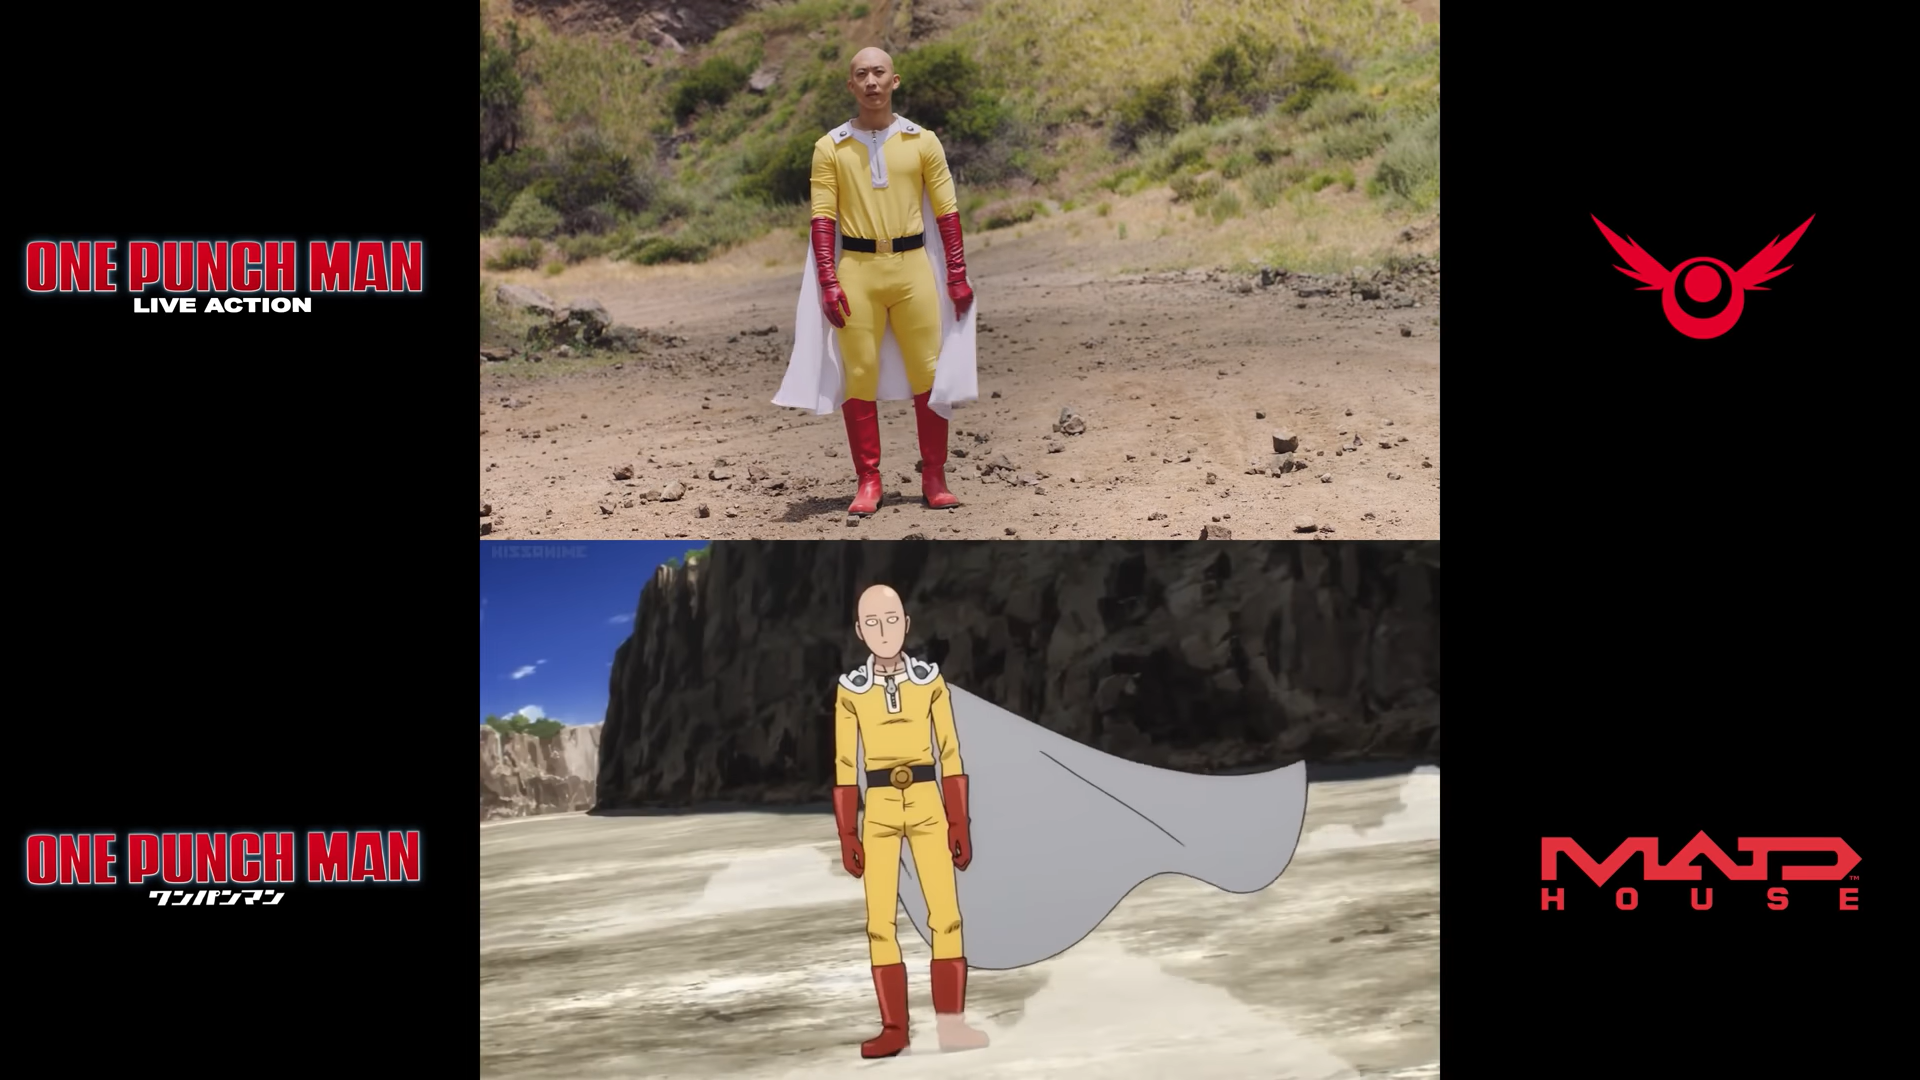 One Punch Man - Anime vs Live Action   RE:Anime Image'